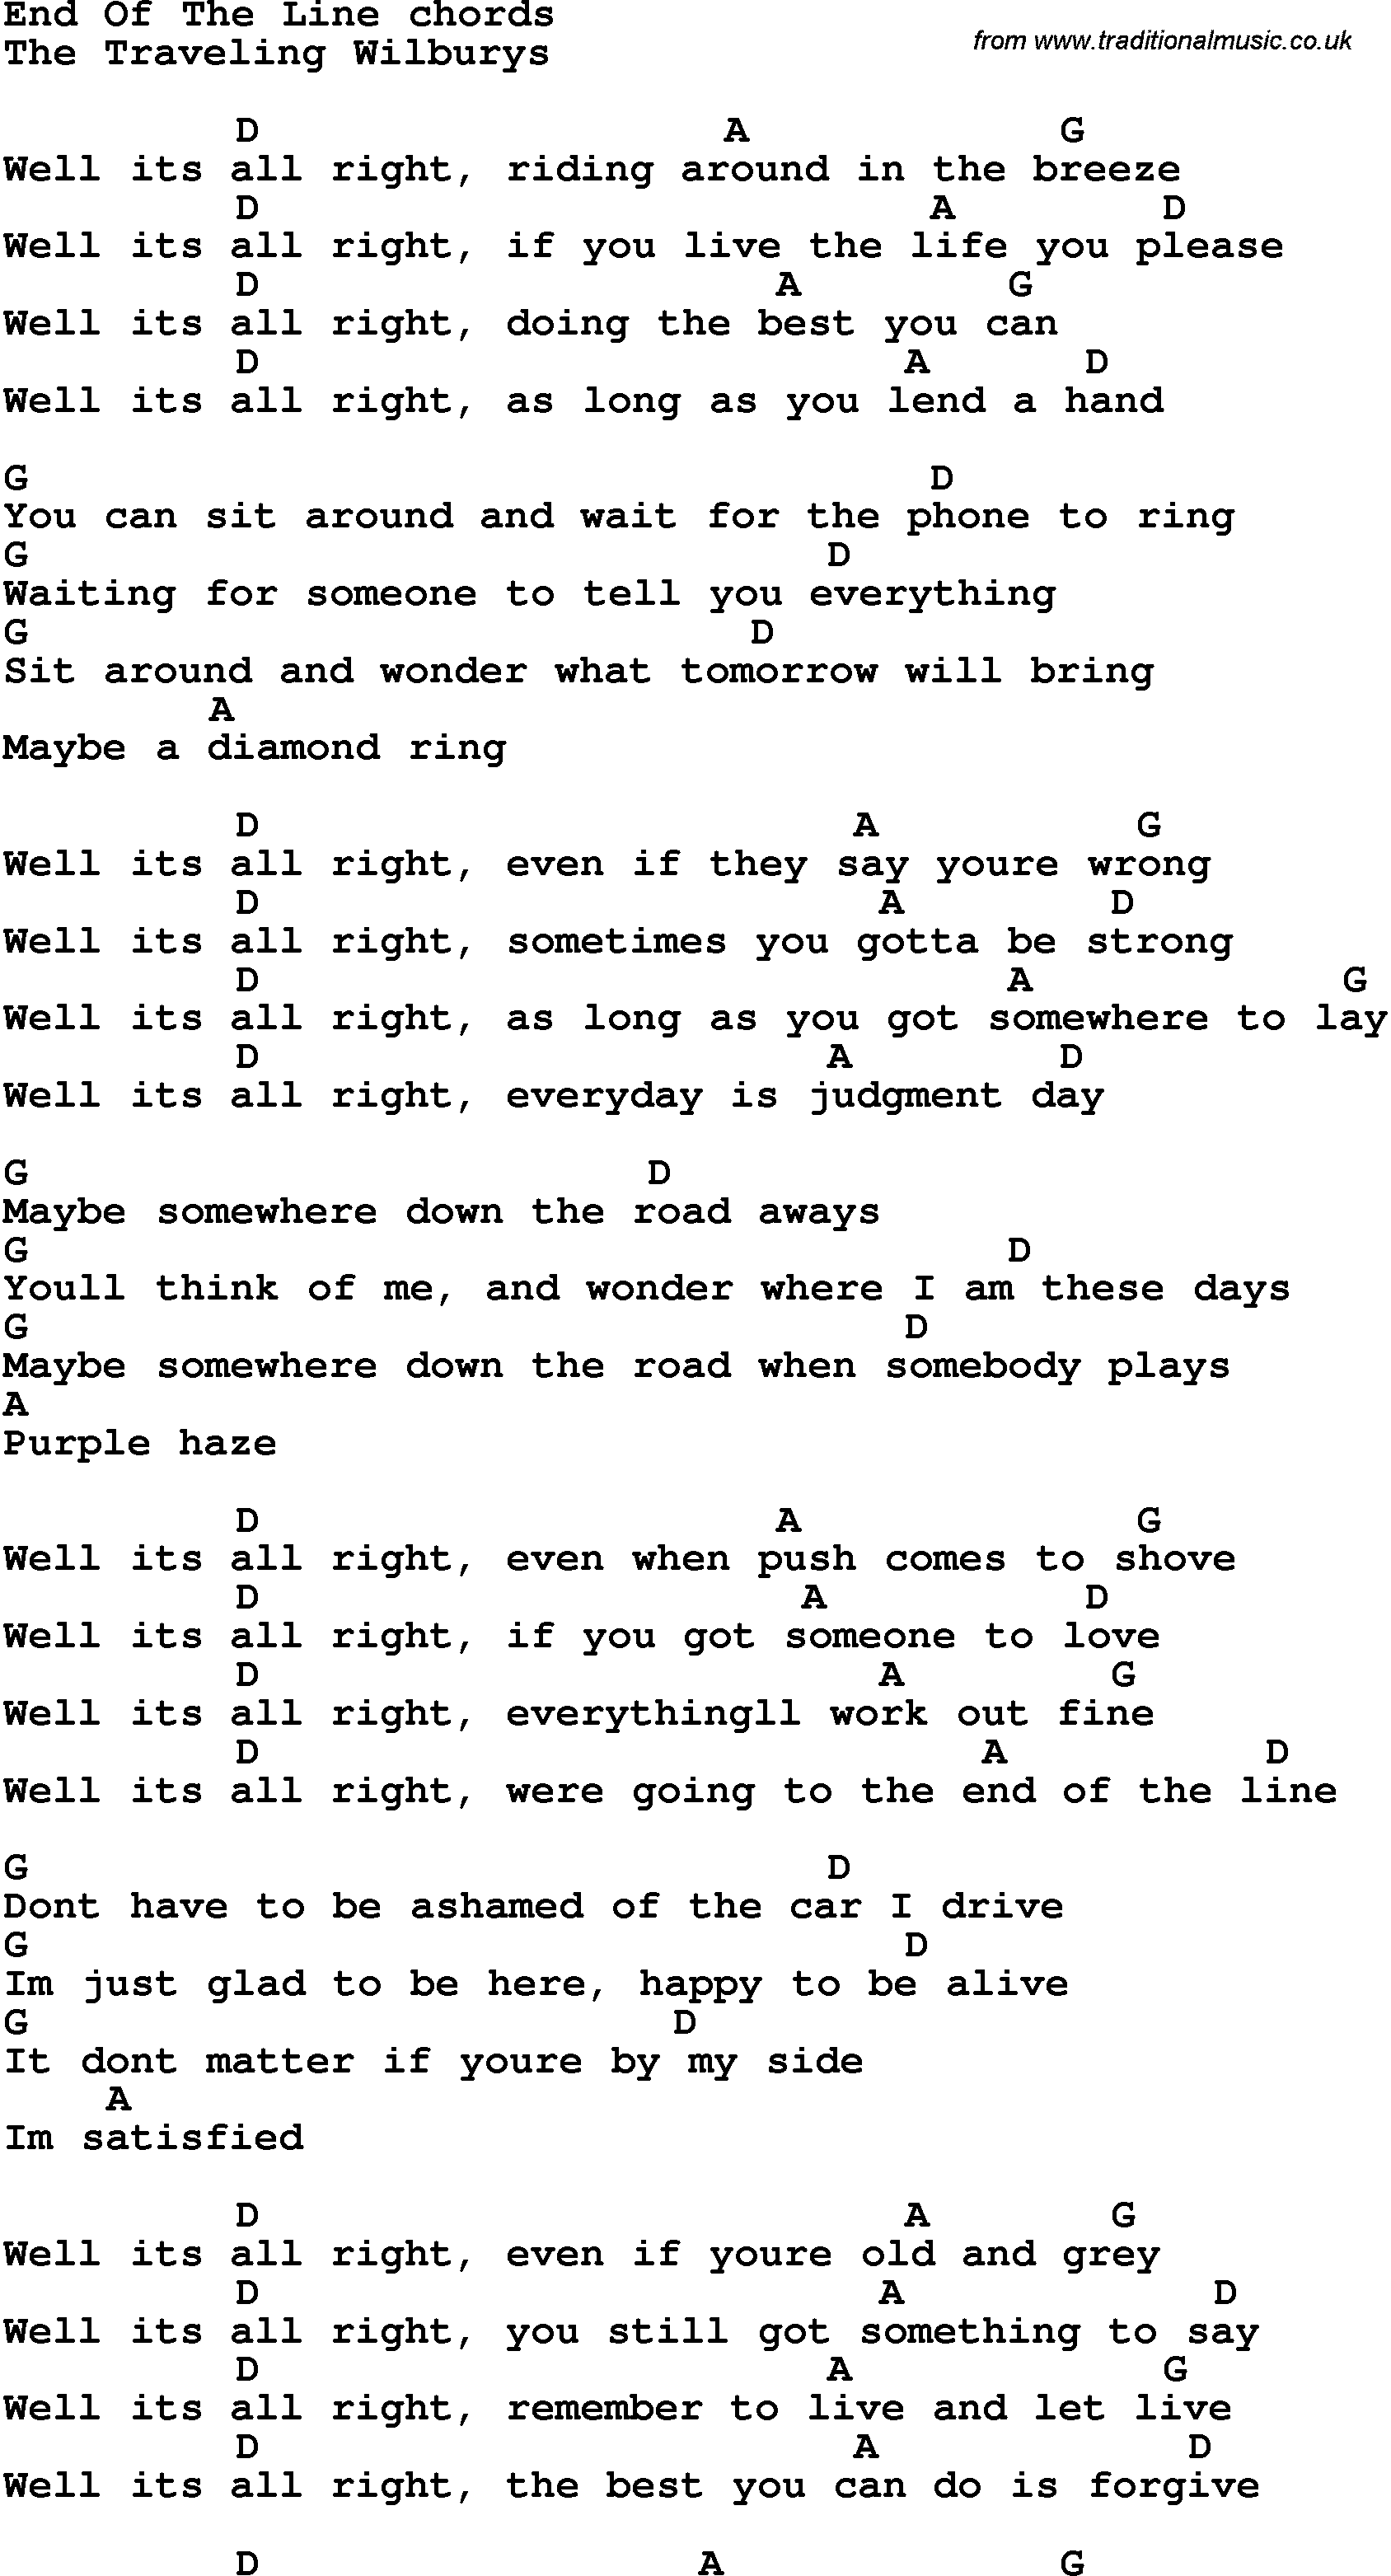 Song lyrics with guitar chords for end of the line sheet music song lyrics with guitar chords for end of the line hexwebz Gallery